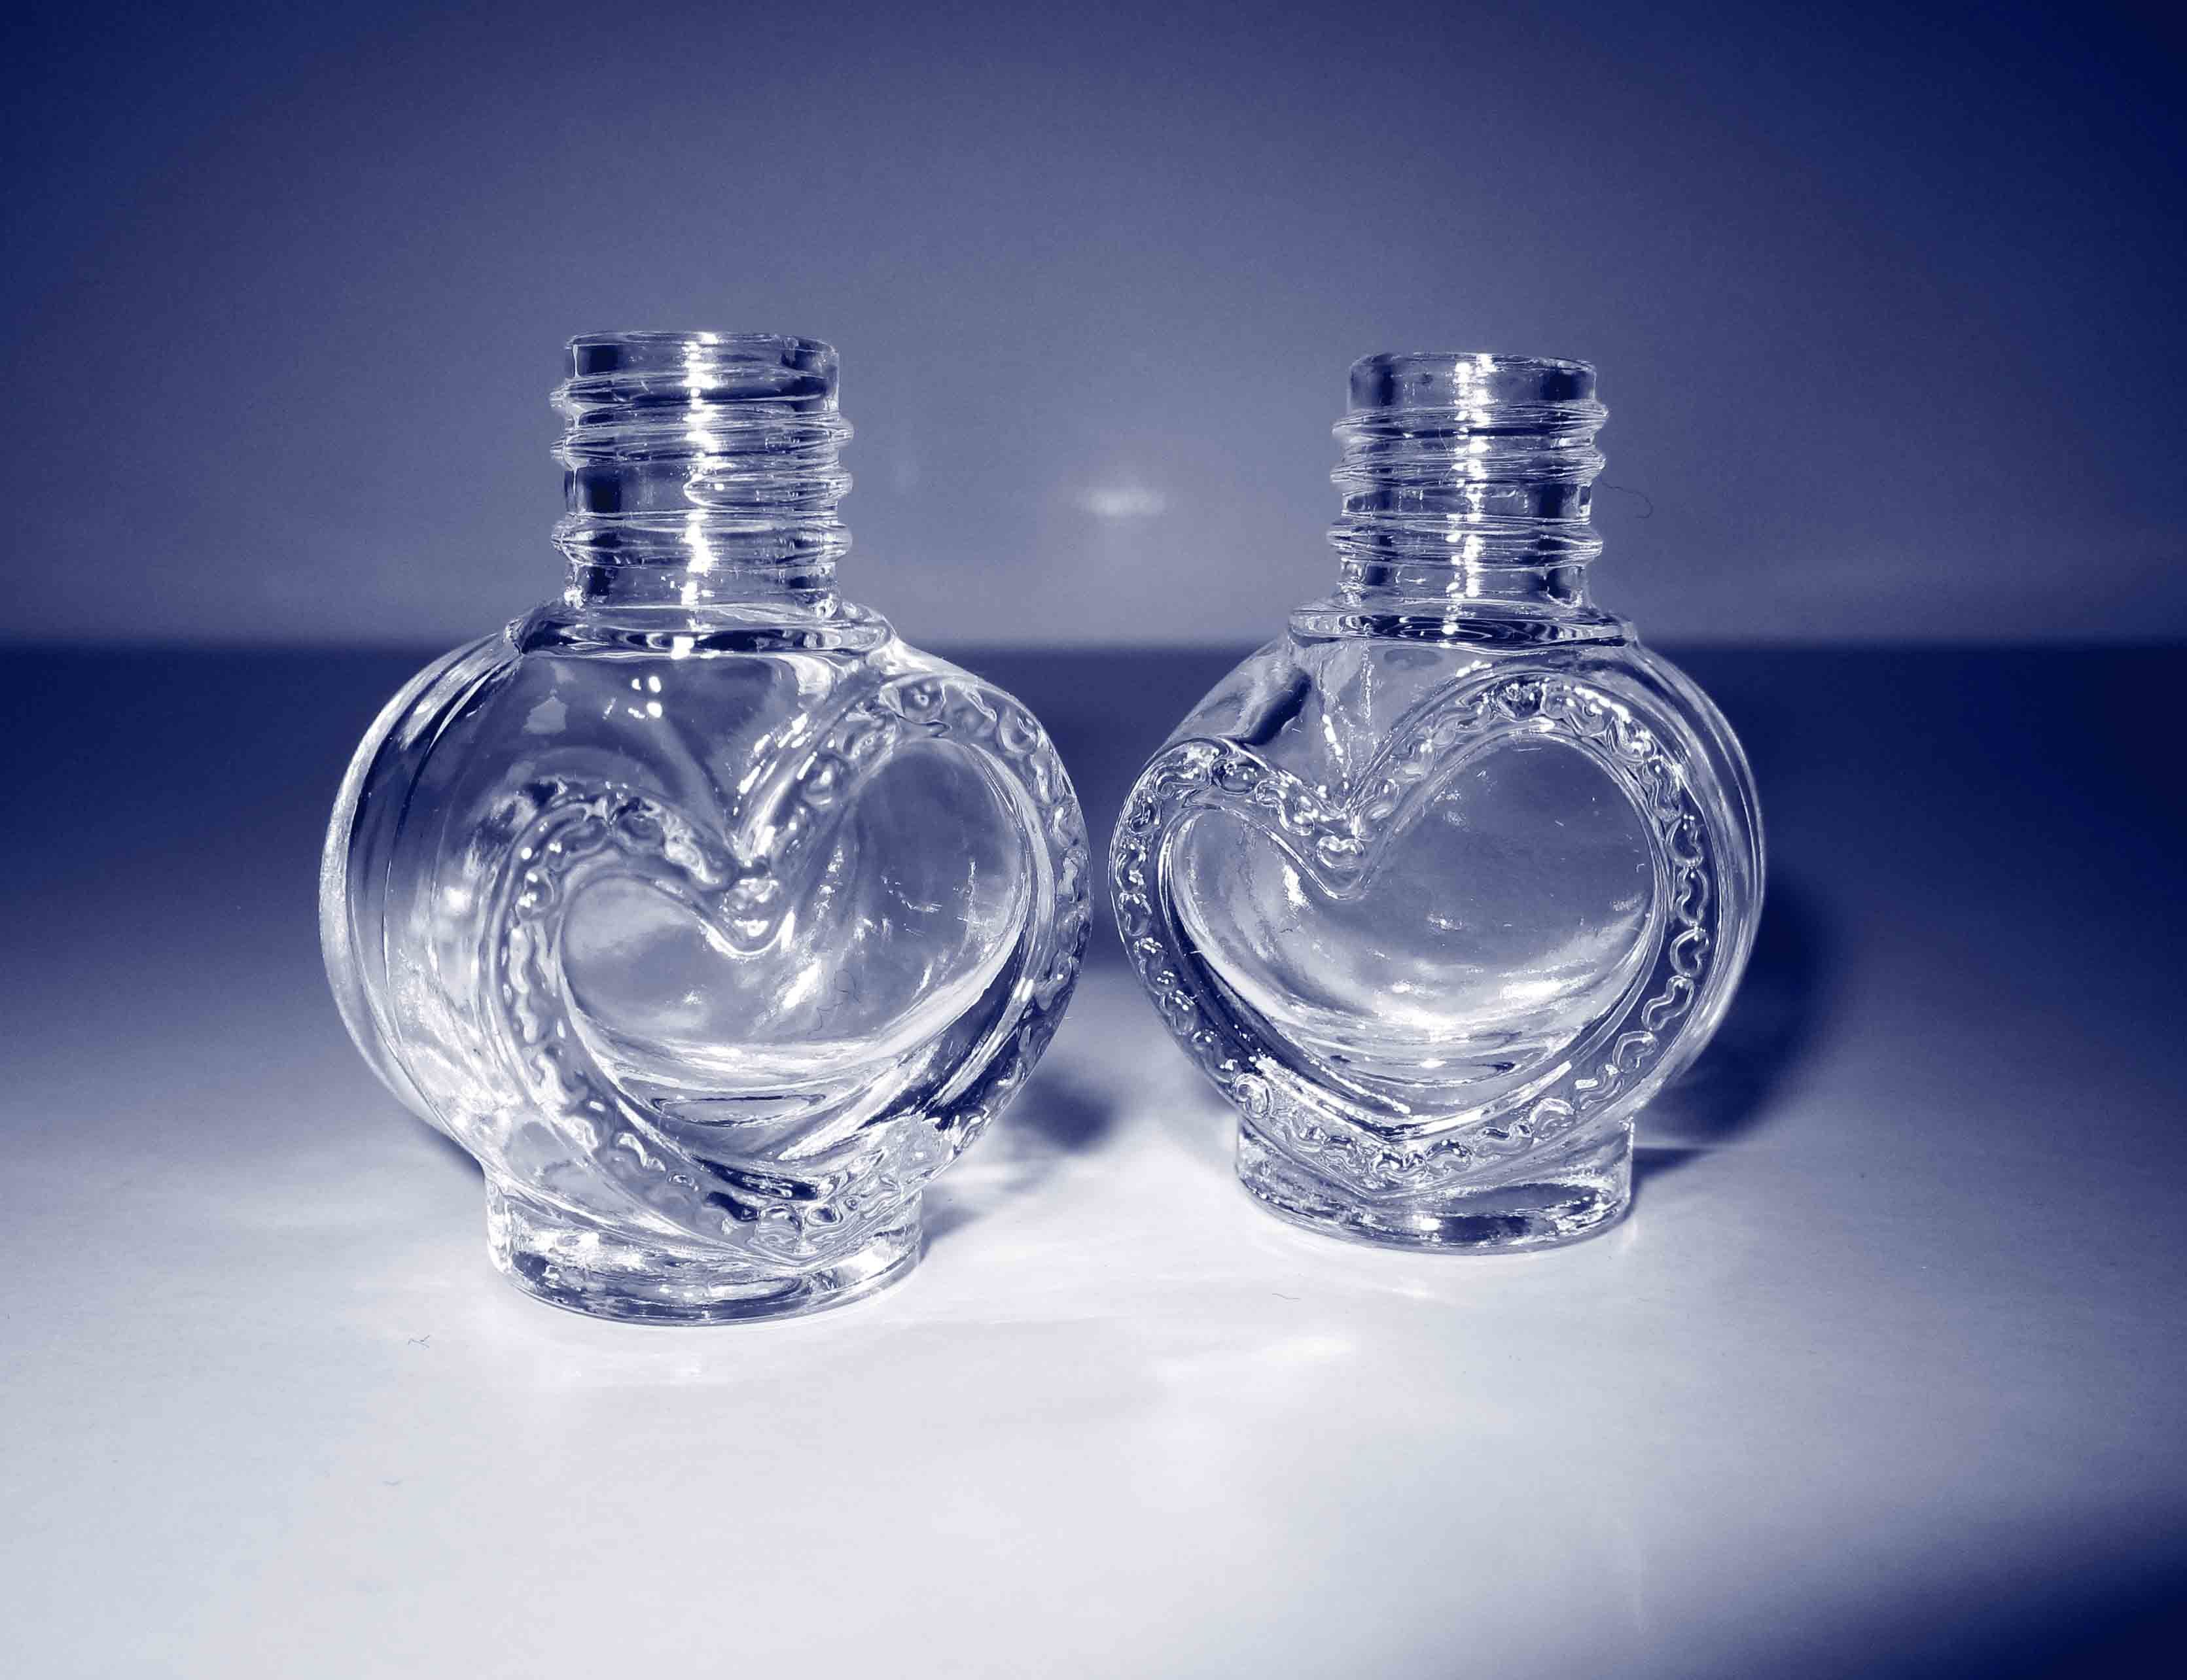 China Heart-Shaped Nail Polish Bottle, One of The Biggest Glass ...